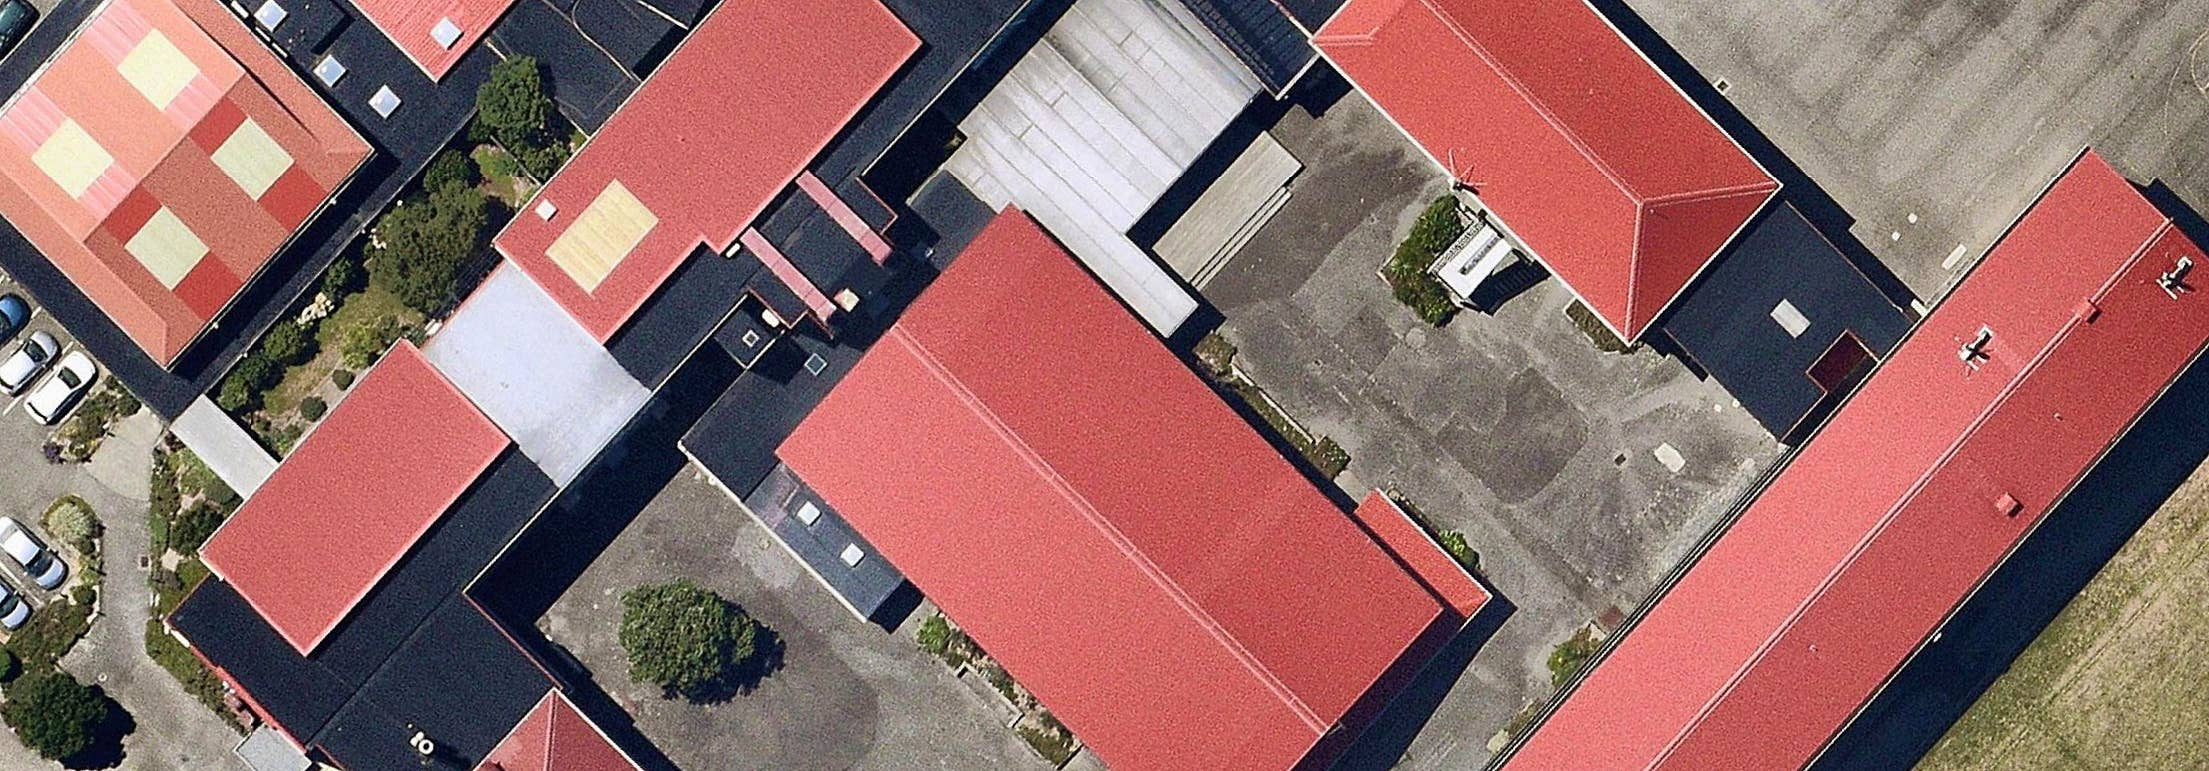 Aerial view maps of commercial rooftops in Wellington, NZ - 8 Feb. 2019